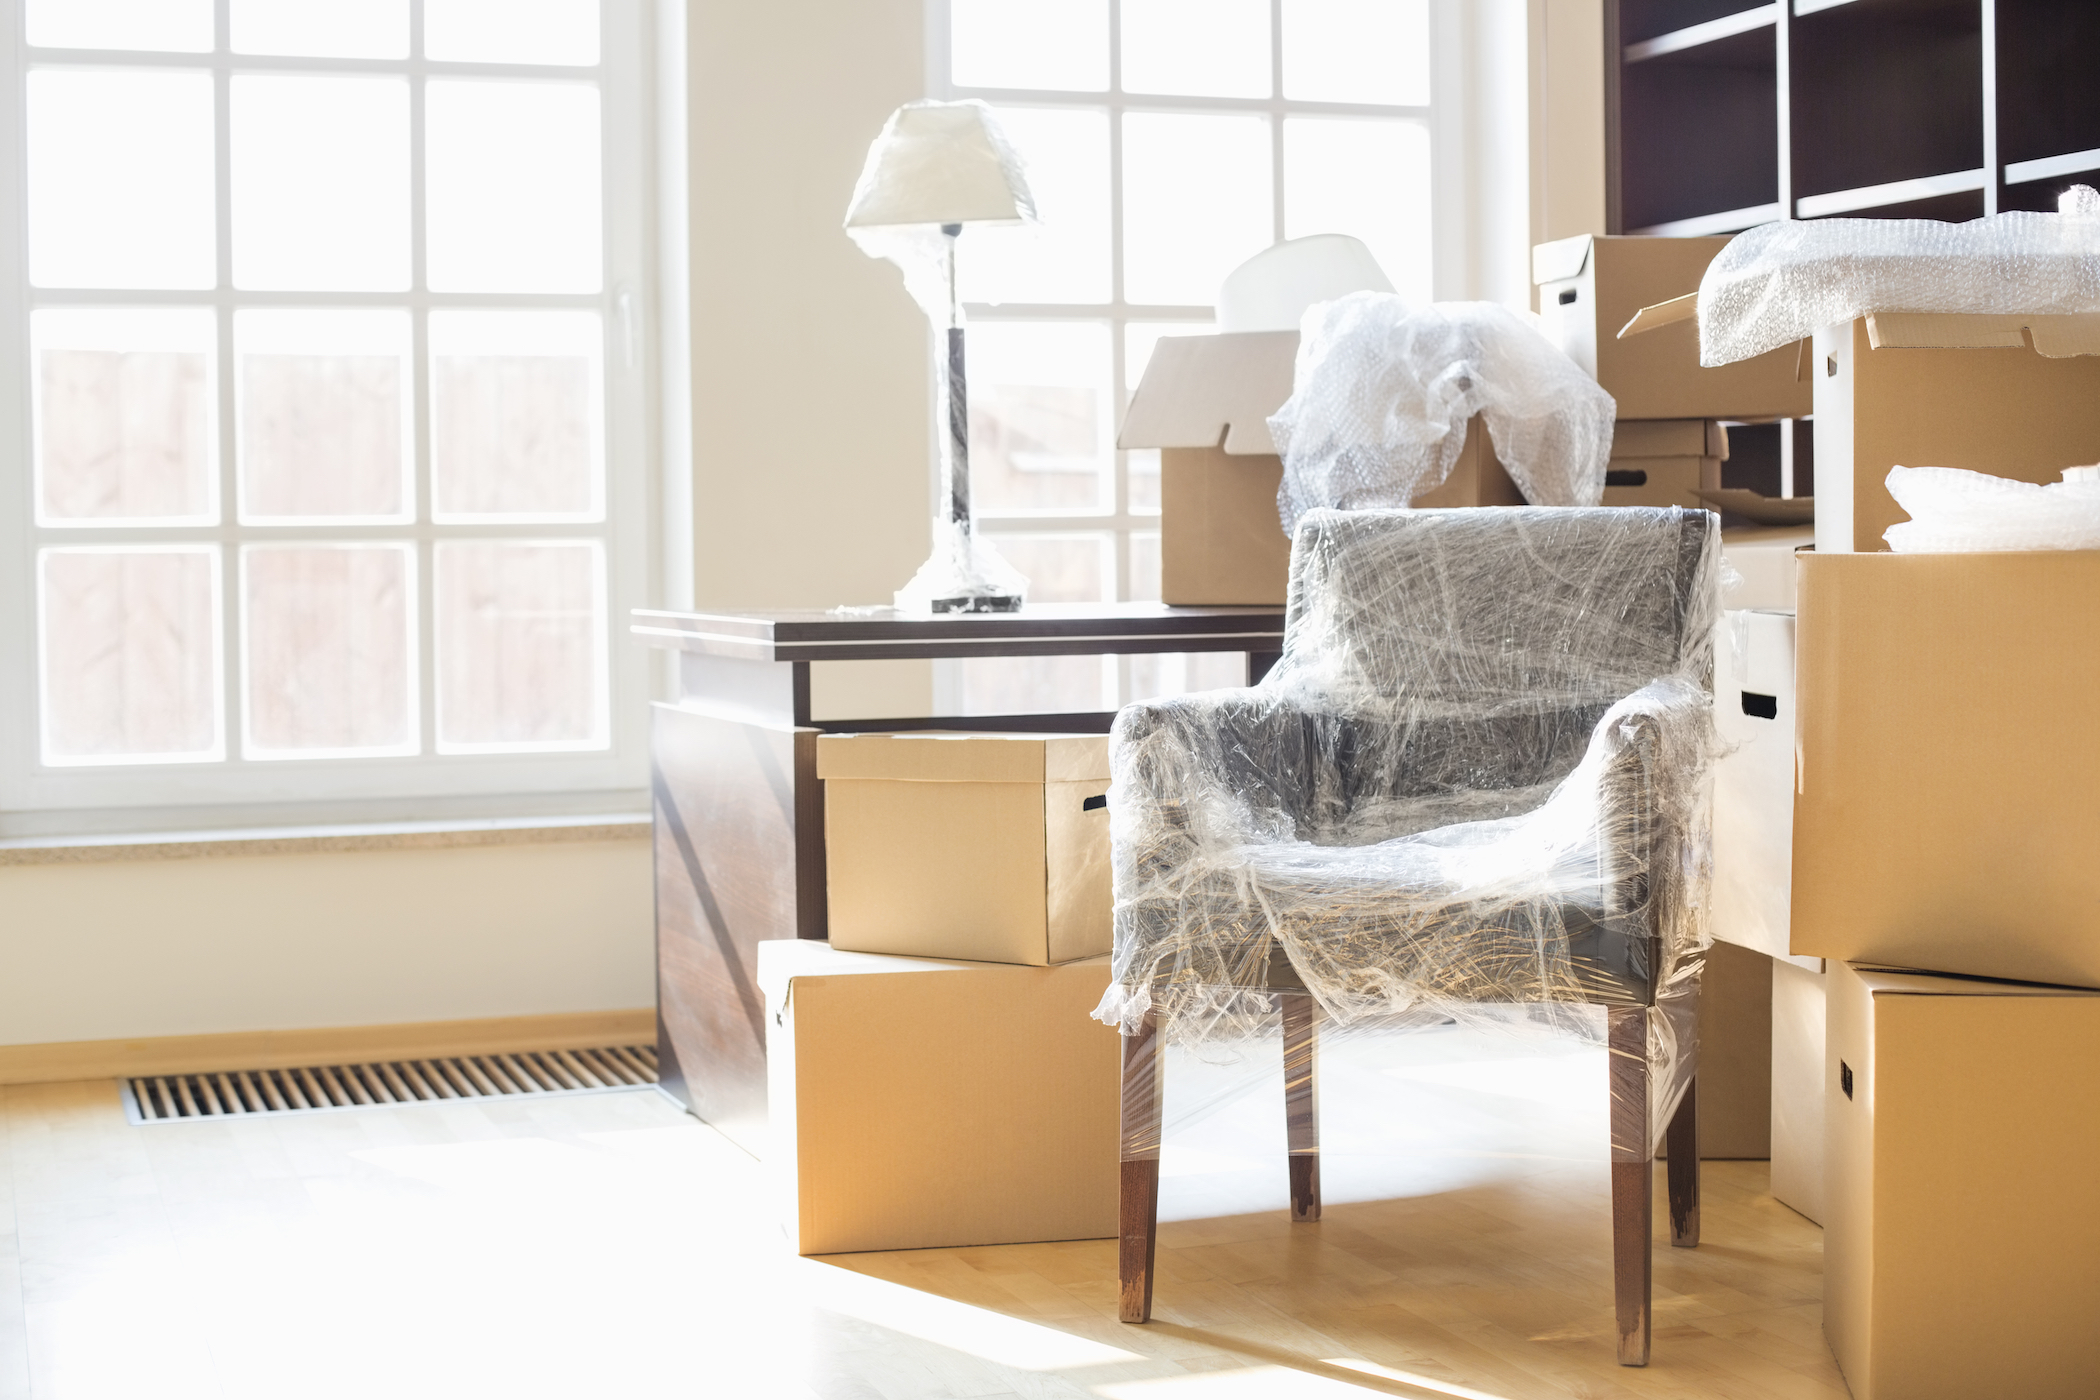 items-ready-for-storage_how-much-does-it-cost-to-rent-a-storage-unit